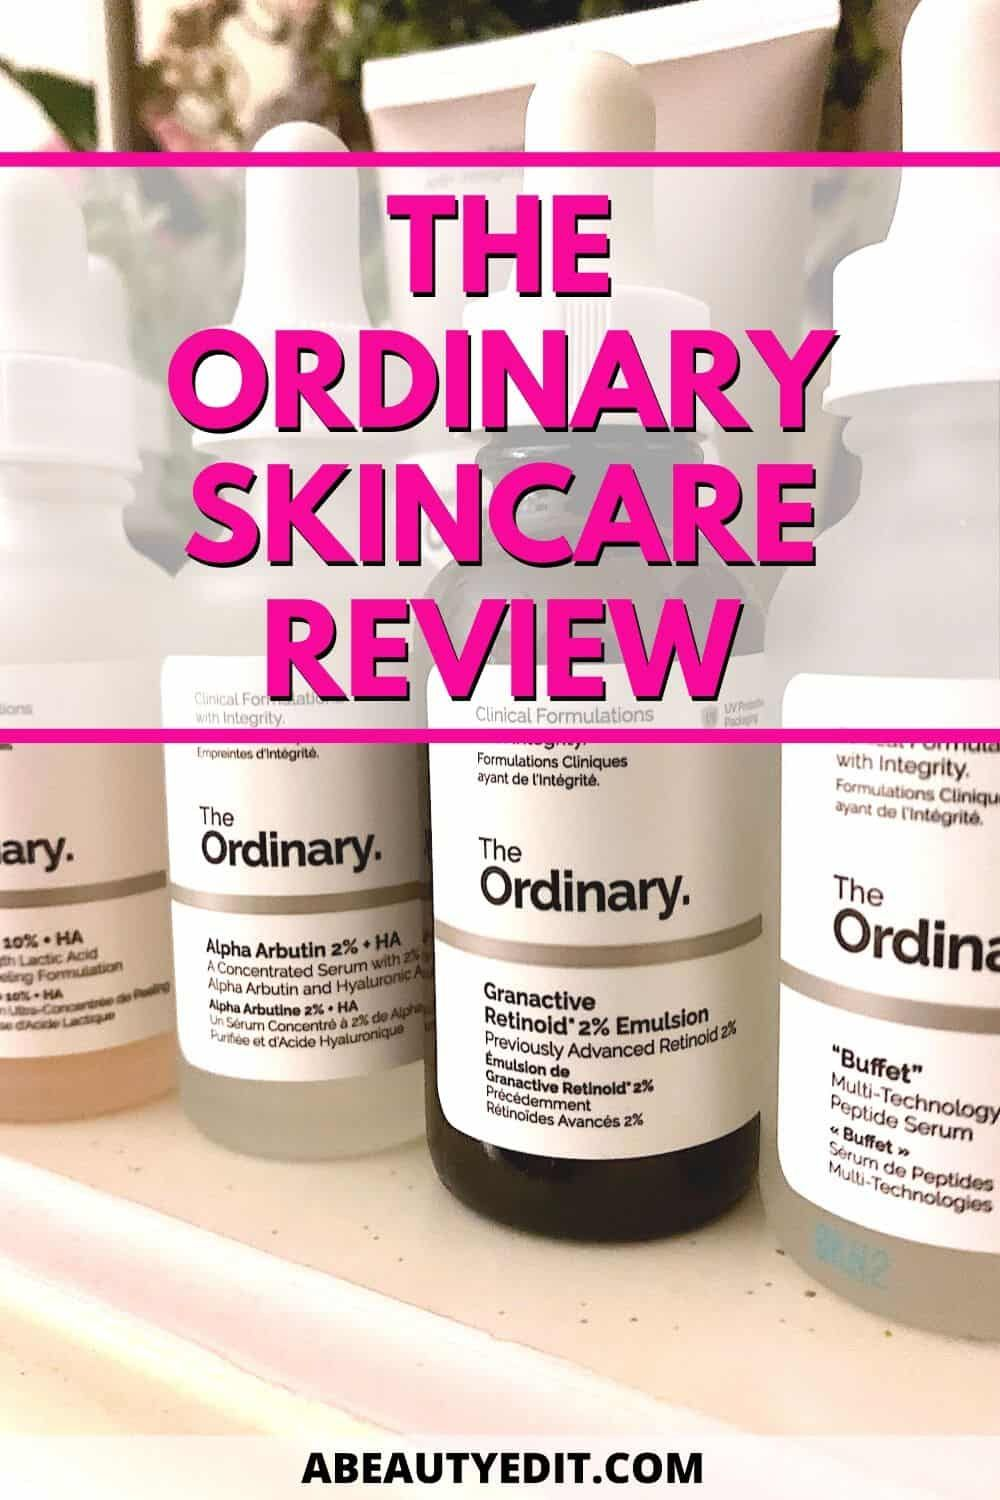 The Ordinary AntiAging Skincare Review in 2020 Aging